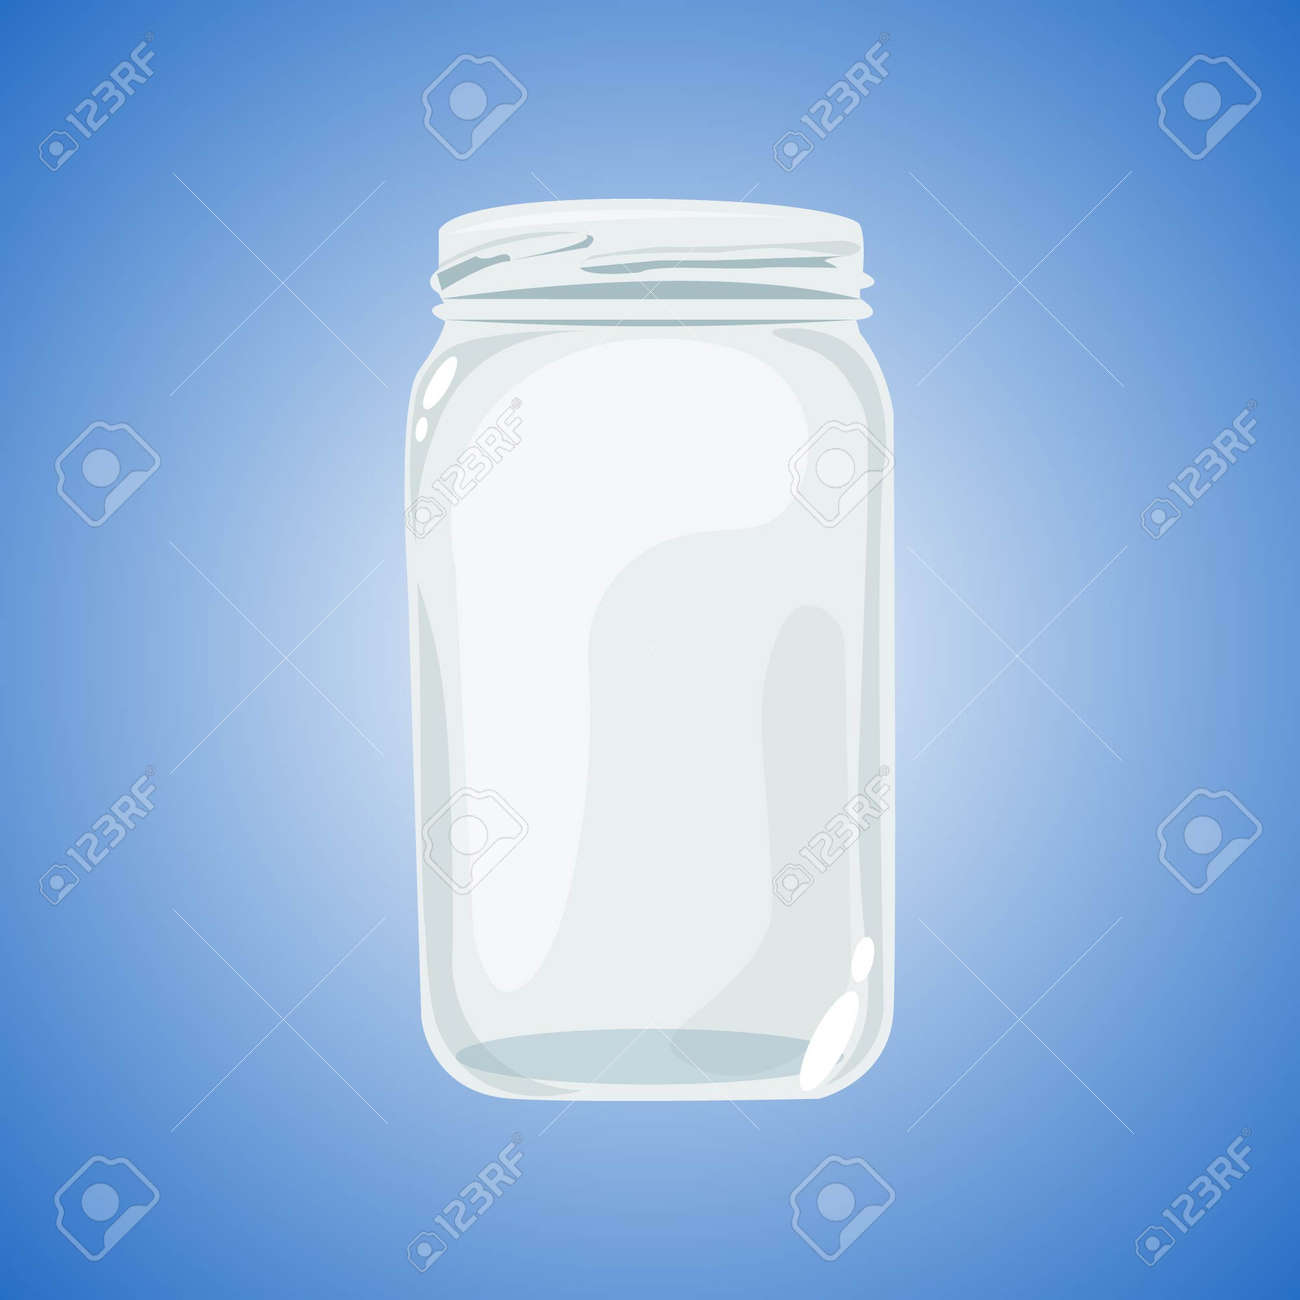 Realistic glass jar isolated on blue background. Empty dishes. - 164571409